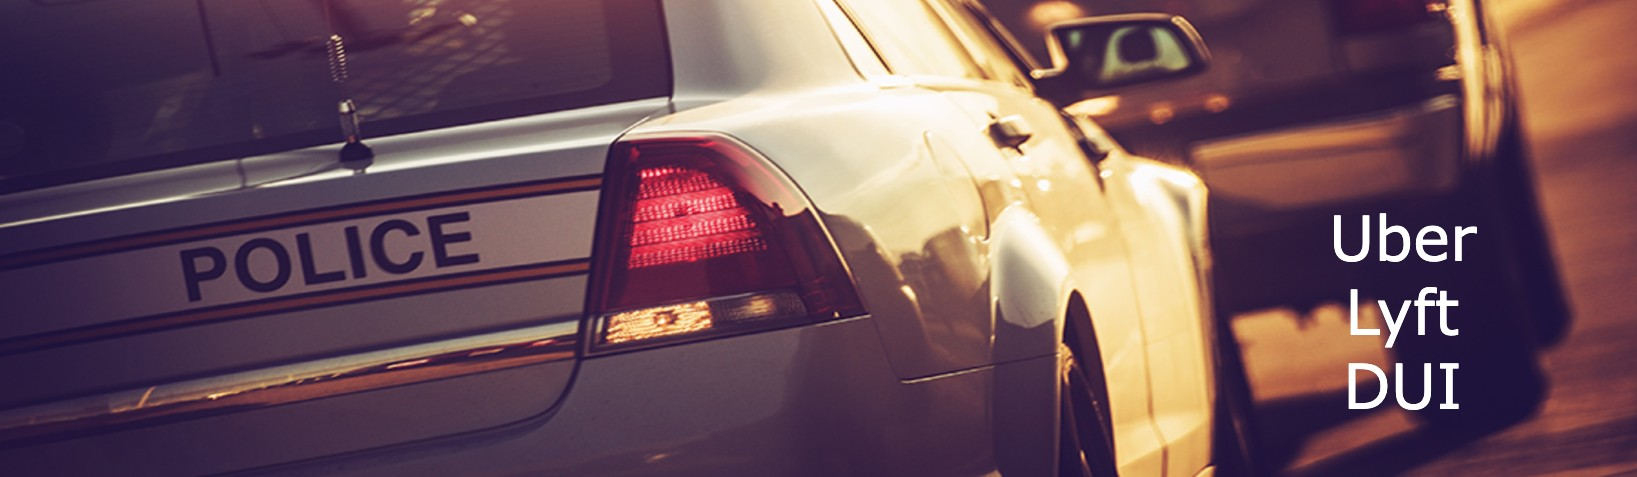 <b>California Vehicle Code Section 23152(e): </b><br>DUI Law For Uber, Lyft, Taxi & Limo Drivers